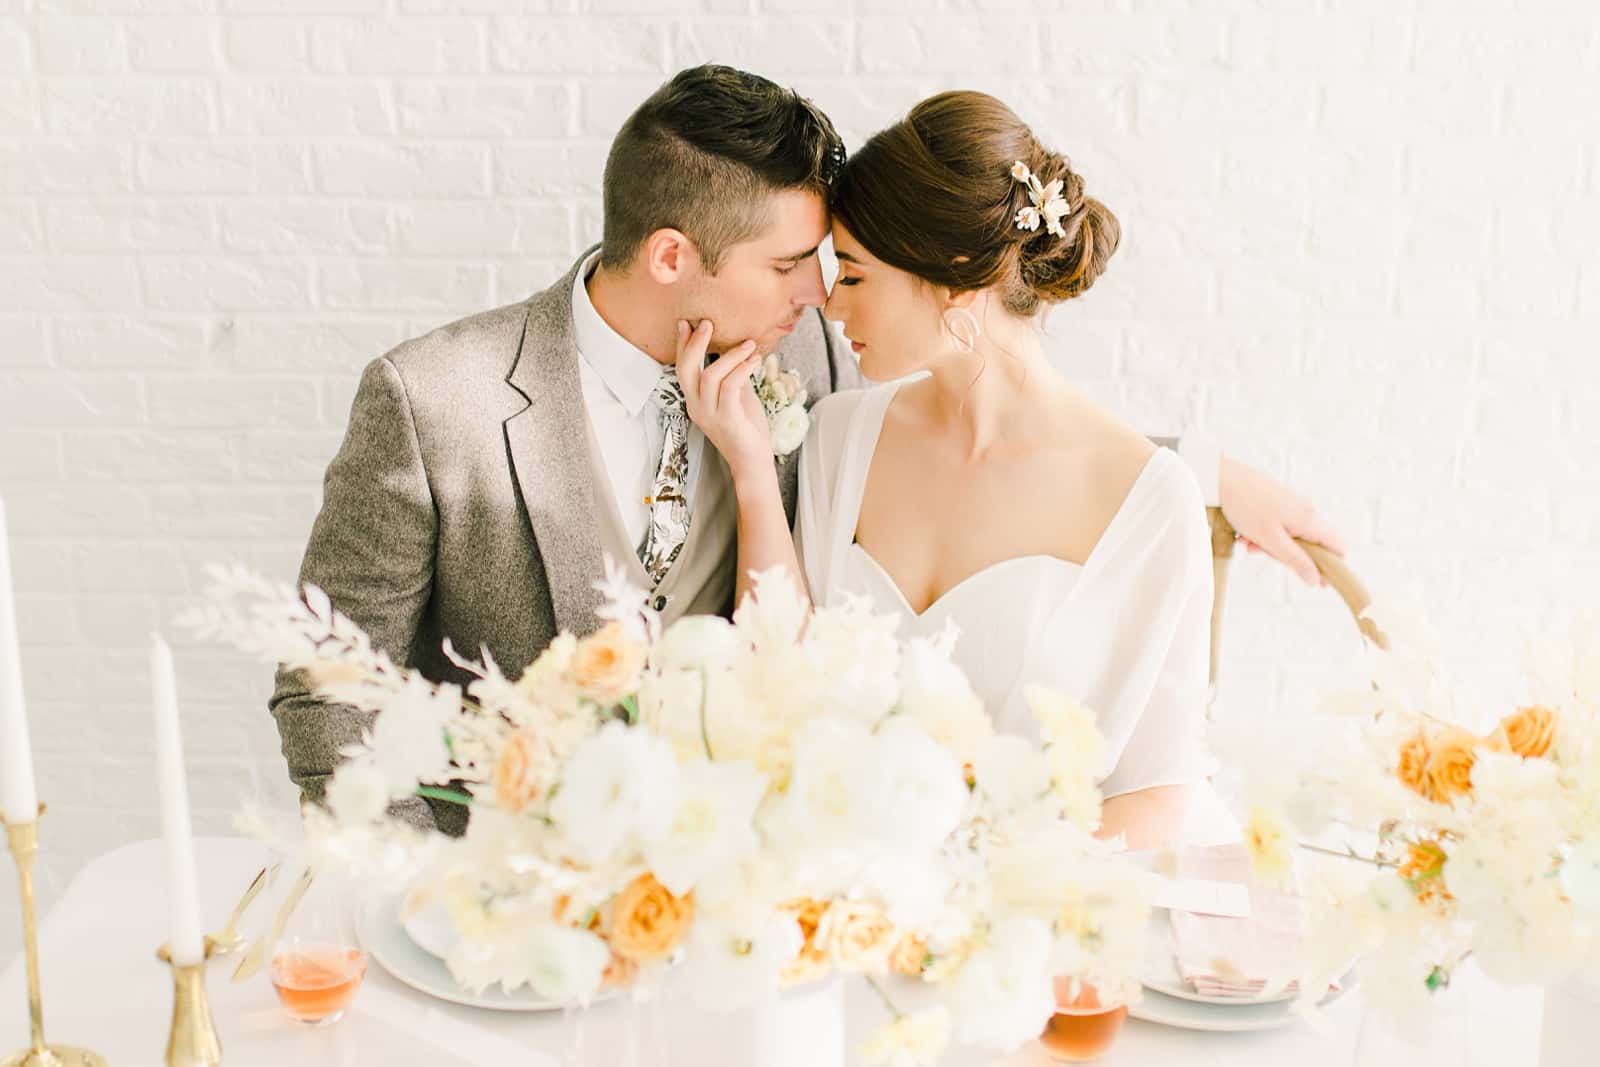 Bride and groom lean close sitting at modern wedding table with white and orange flowers